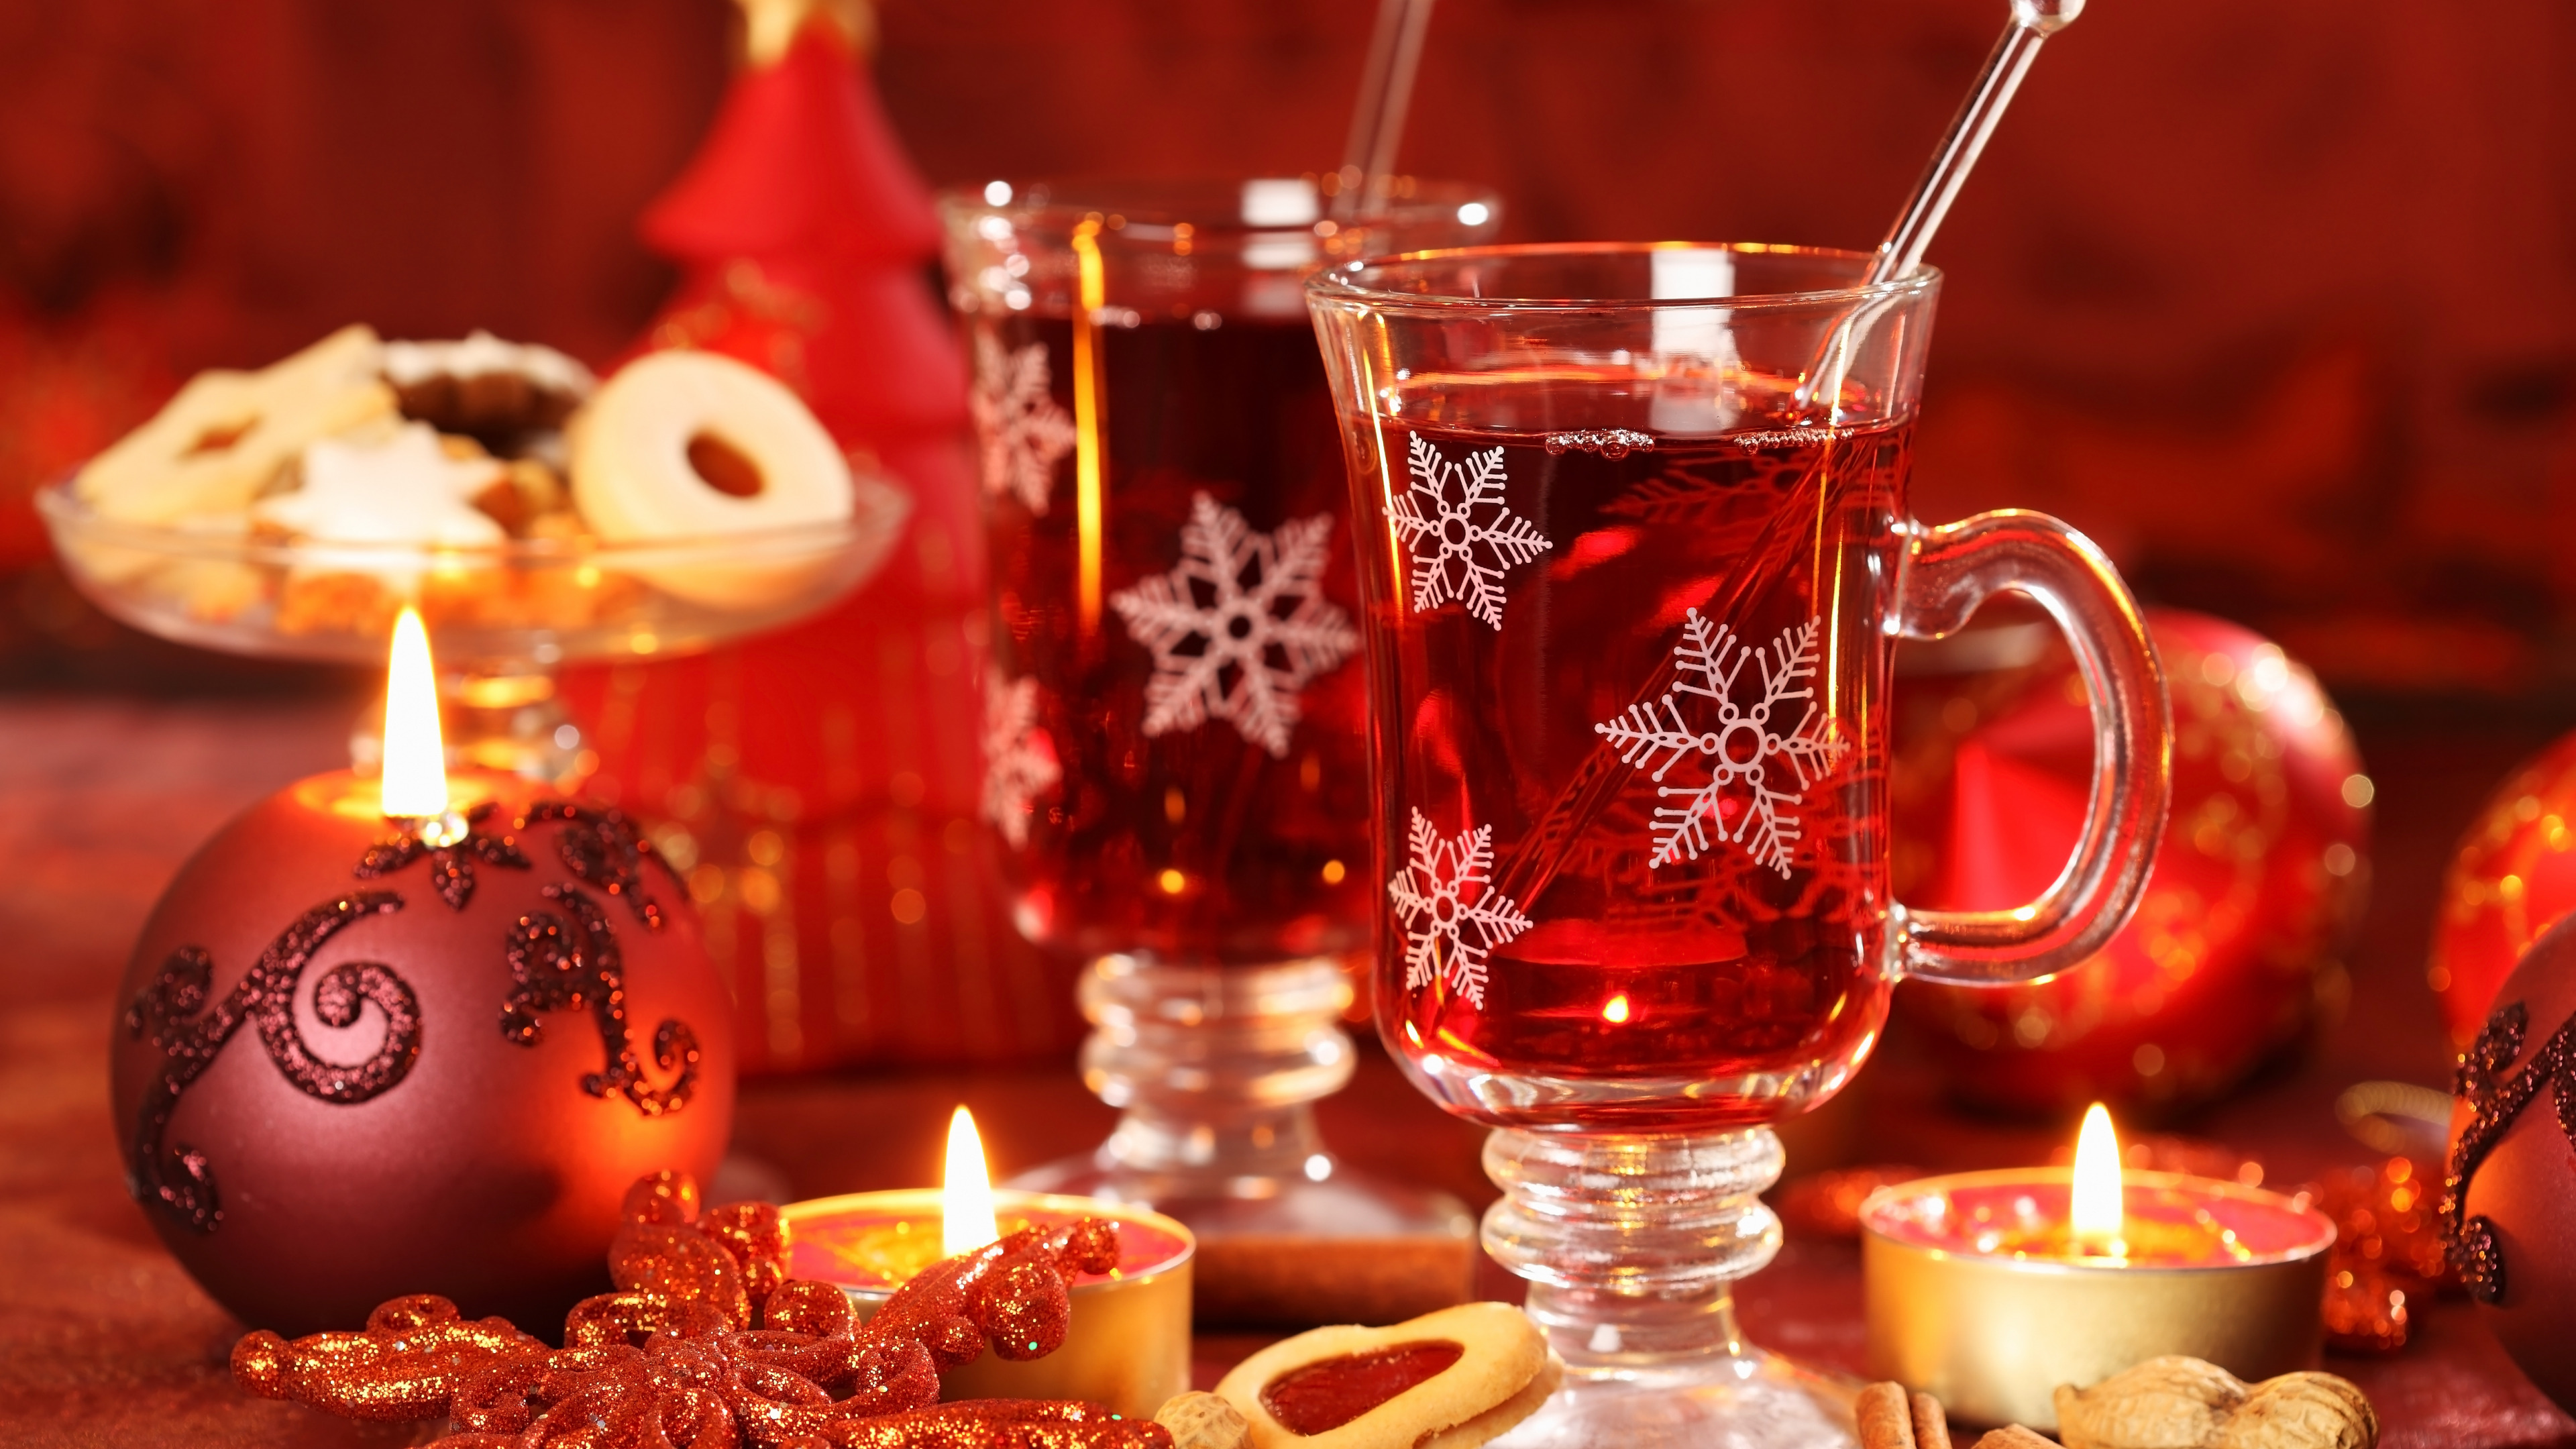 http://img3.goodfon.ru/original/3840x2160/a/e8/christmas-decoration-new-year-3844.jpg